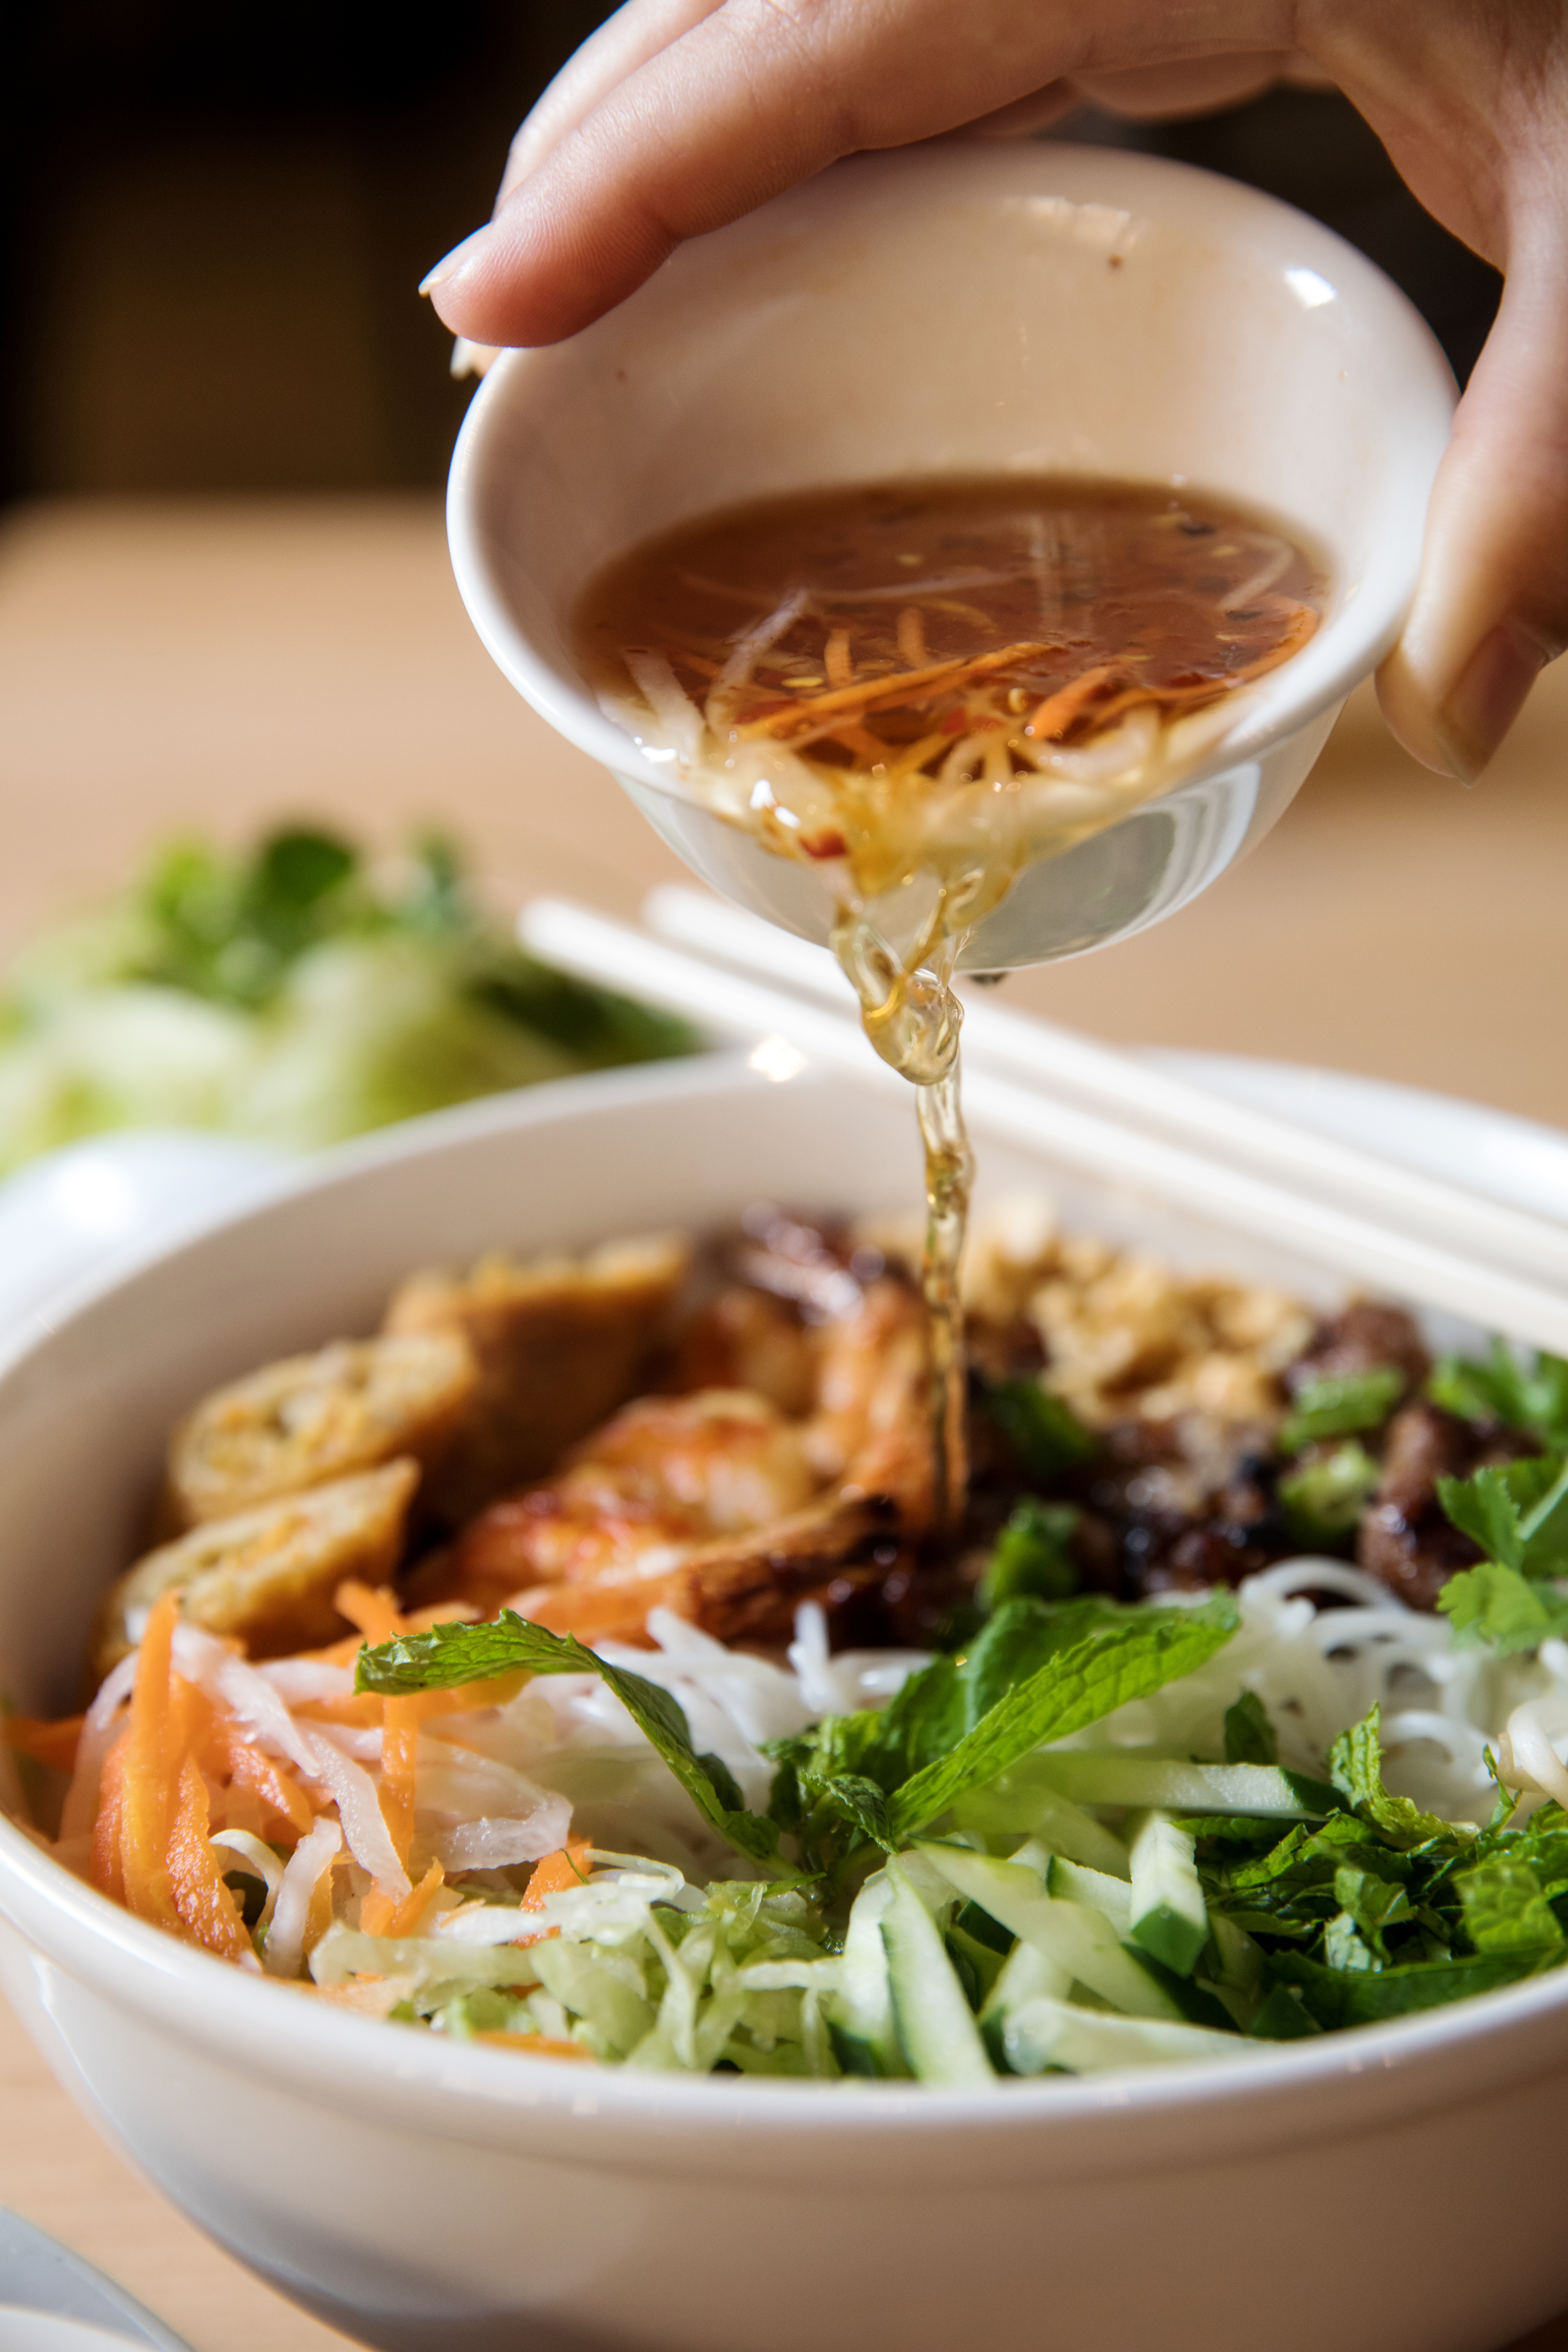 Go to noodle heaven with the bold flavors and adventurous